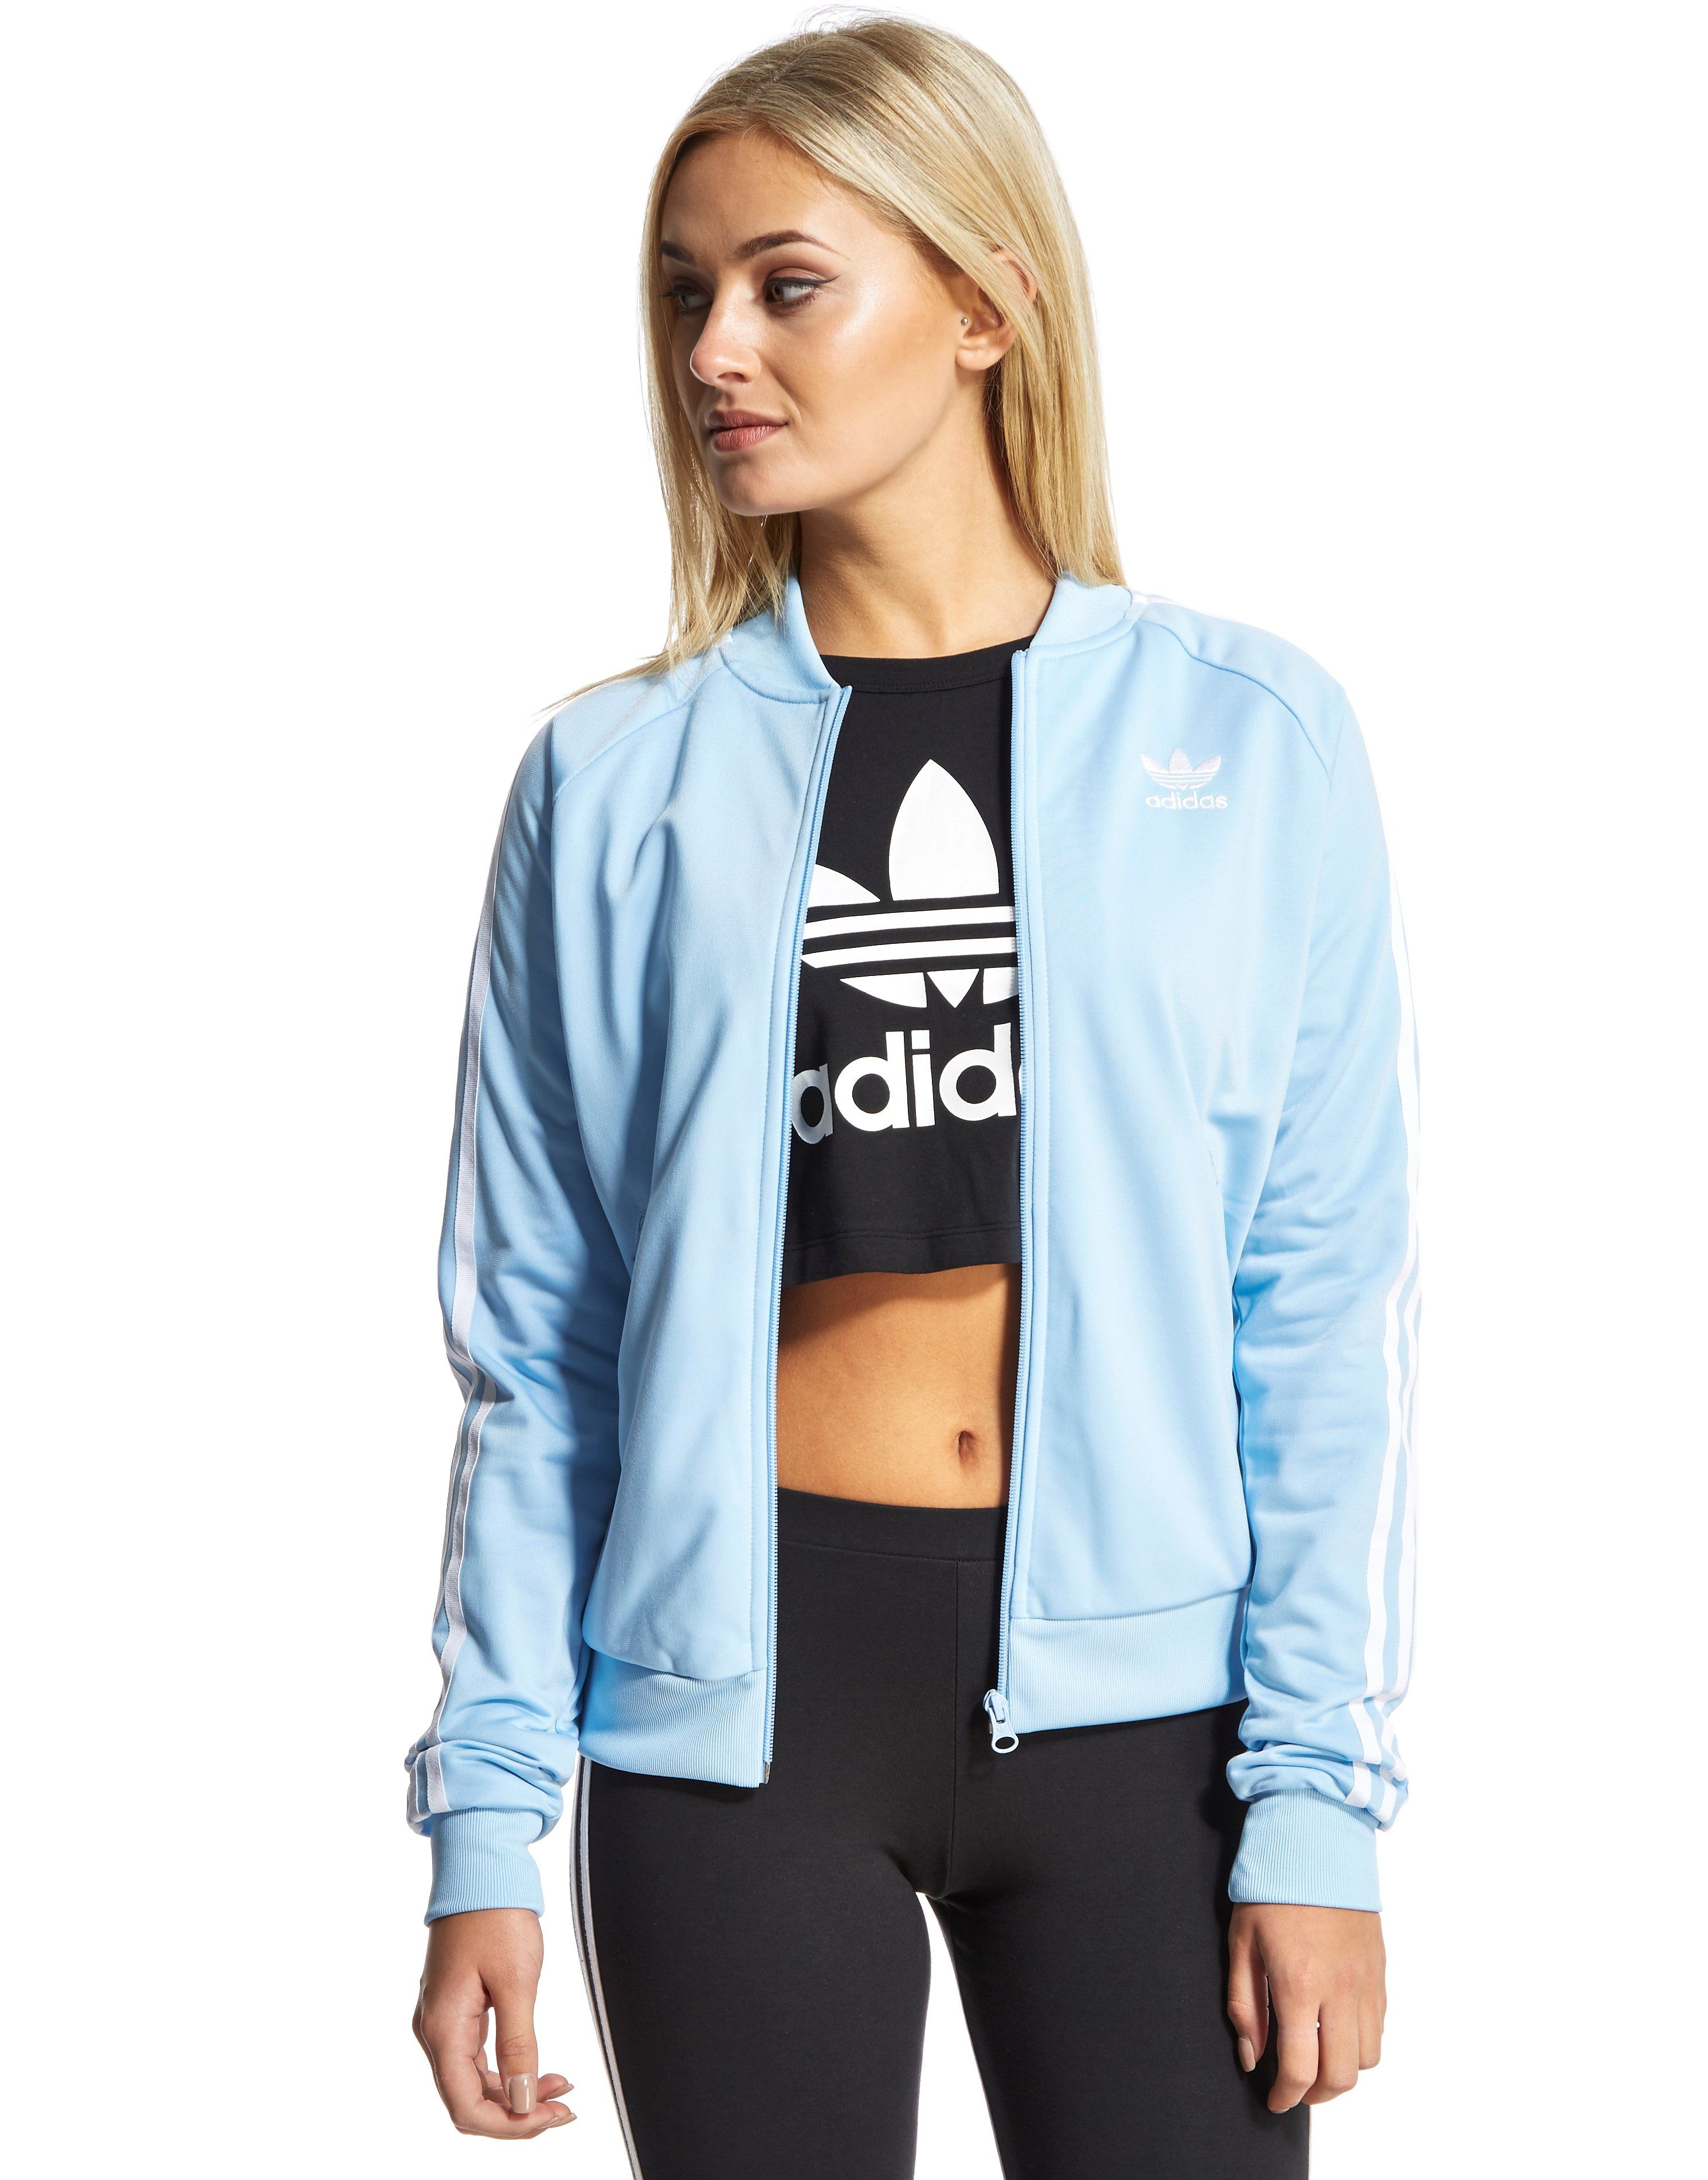 Adidas superstar track top donne formatori clearance